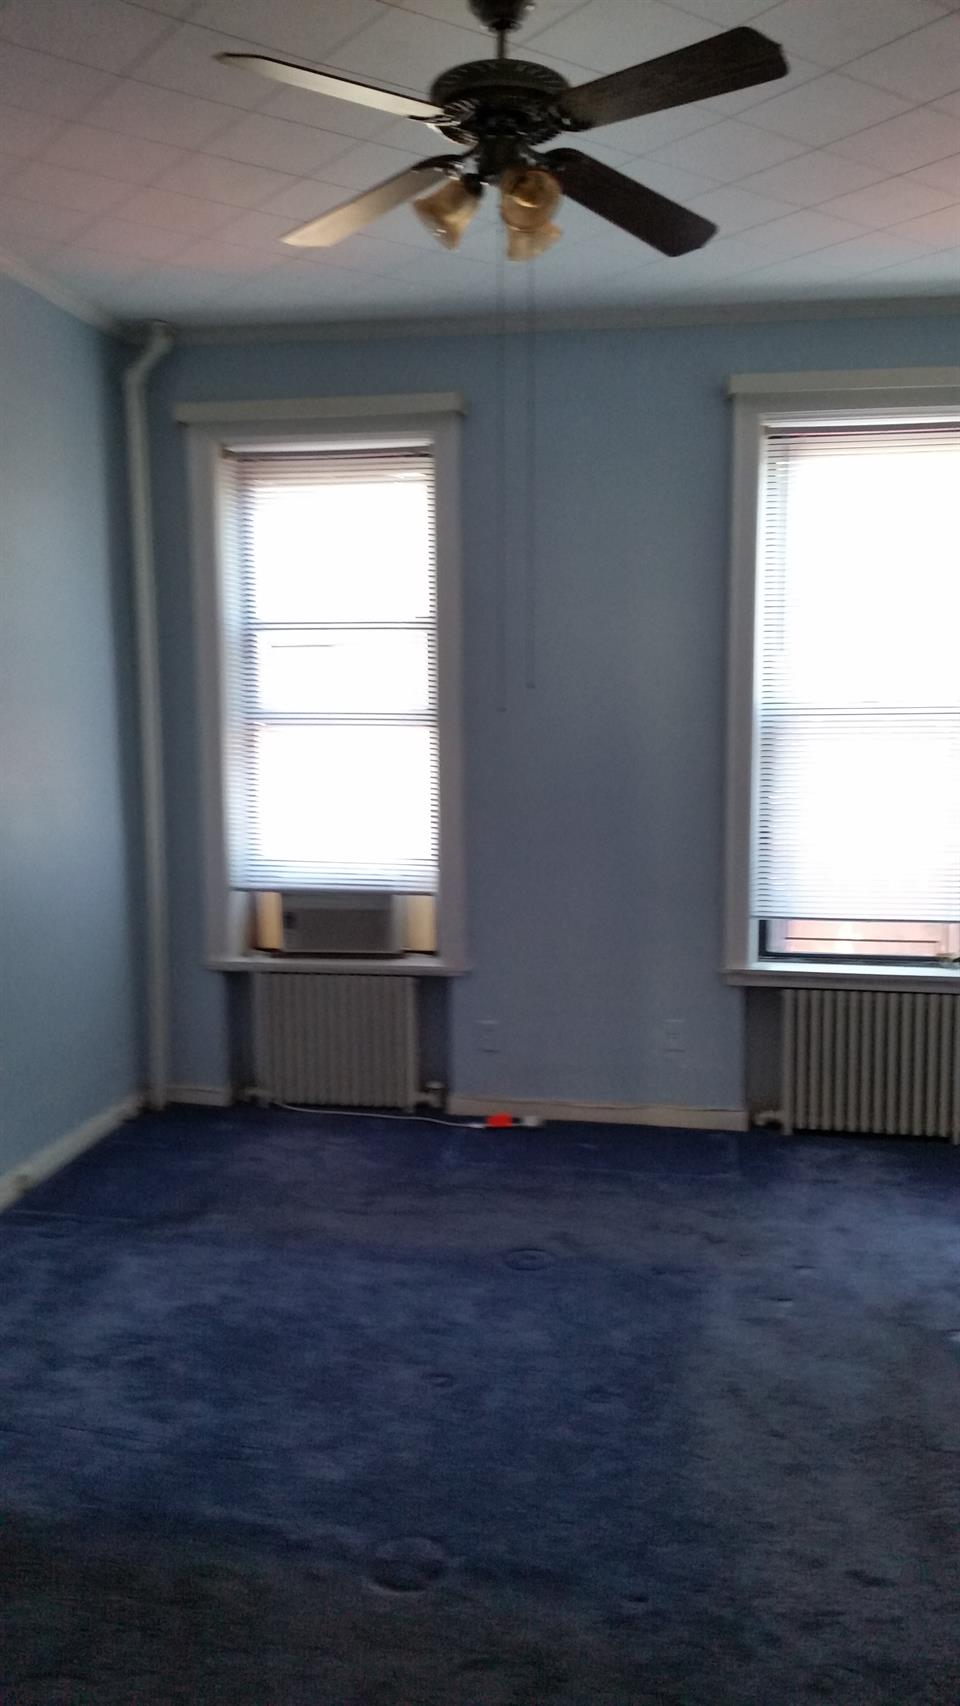 Additional photo for property listing at 71st Bet 10th & 11th  Brooklyn, New York 11228 United States